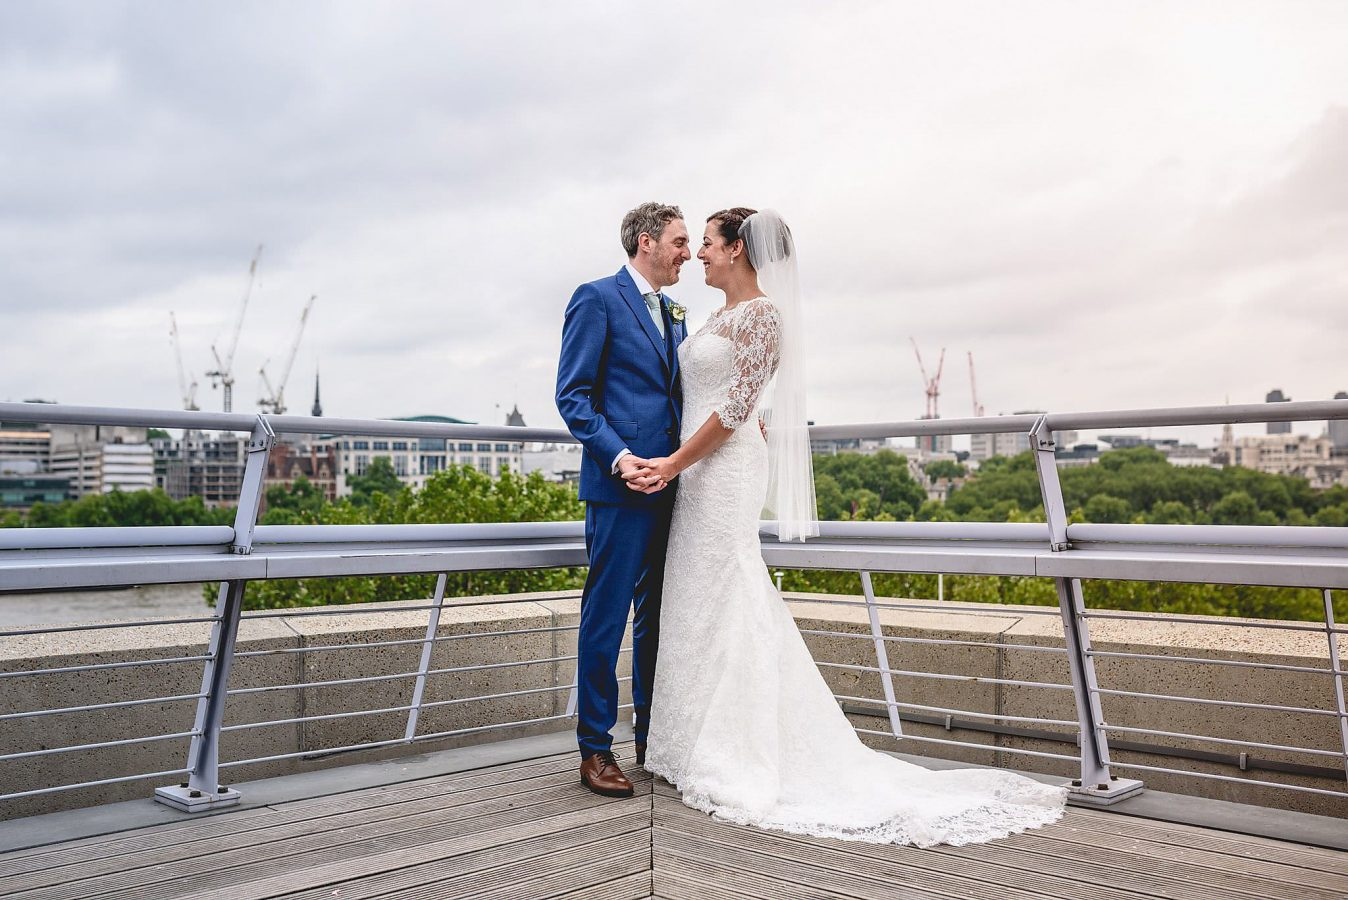 London-Wedding-Photographer-Emmie-Scott-84